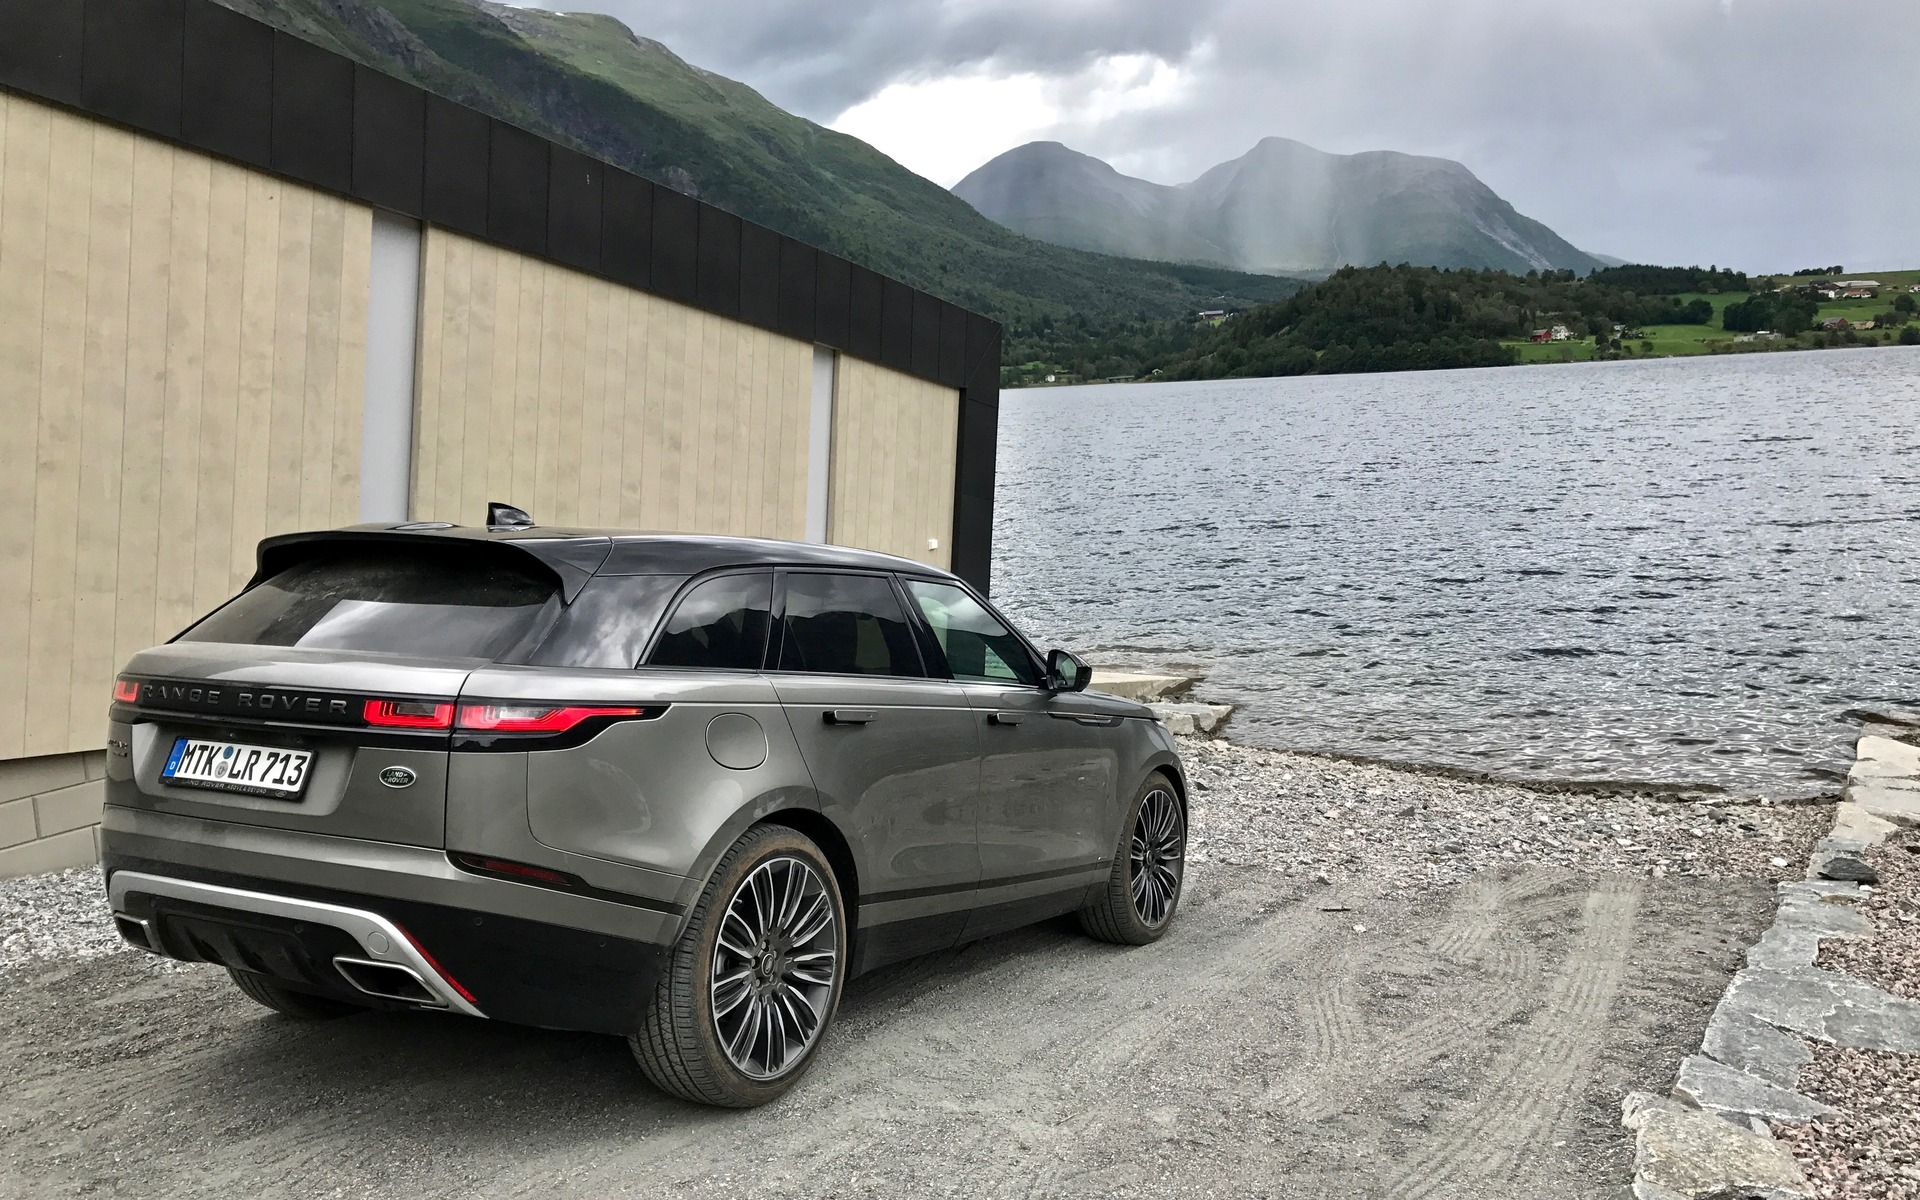 2018 range rover velar a distinguished off roader the car guide. Black Bedroom Furniture Sets. Home Design Ideas